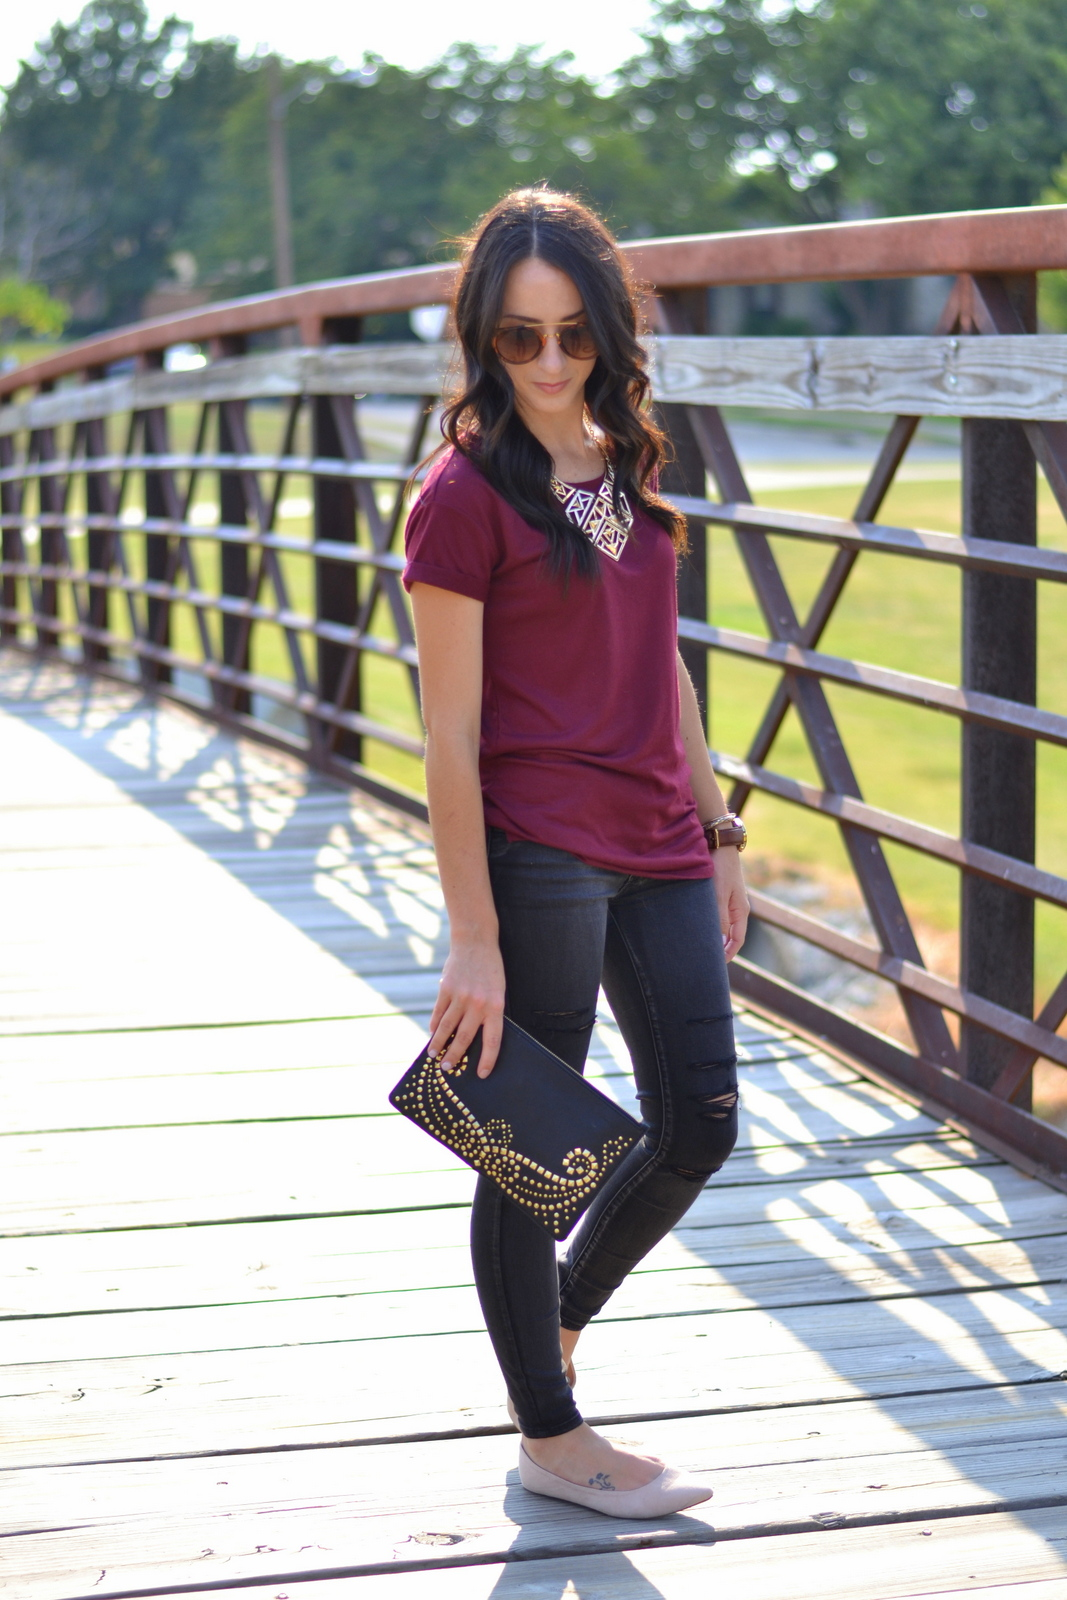 Ripped Black Jeans and Basic Tee for transitional look